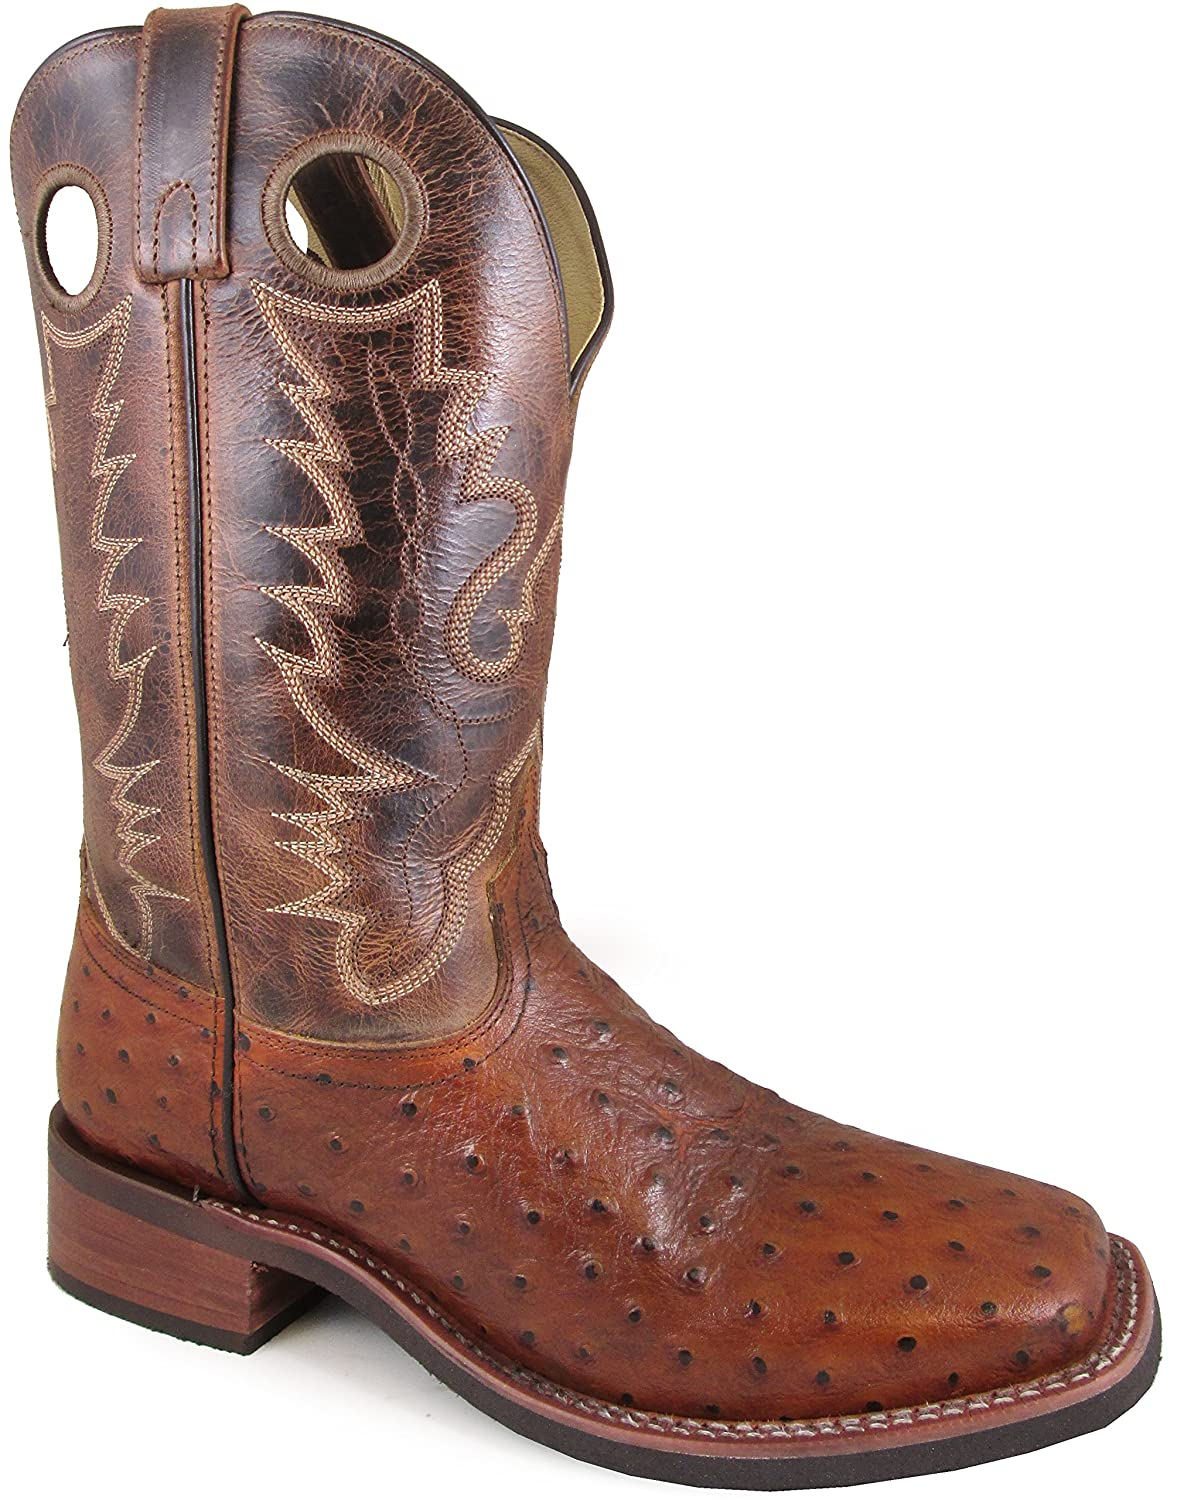 Smoky Mountain Men's Danville Pull On Stitched Textured Square Toe Cognac/Brown Crackle Boots Smoky Mountain Boots 4048